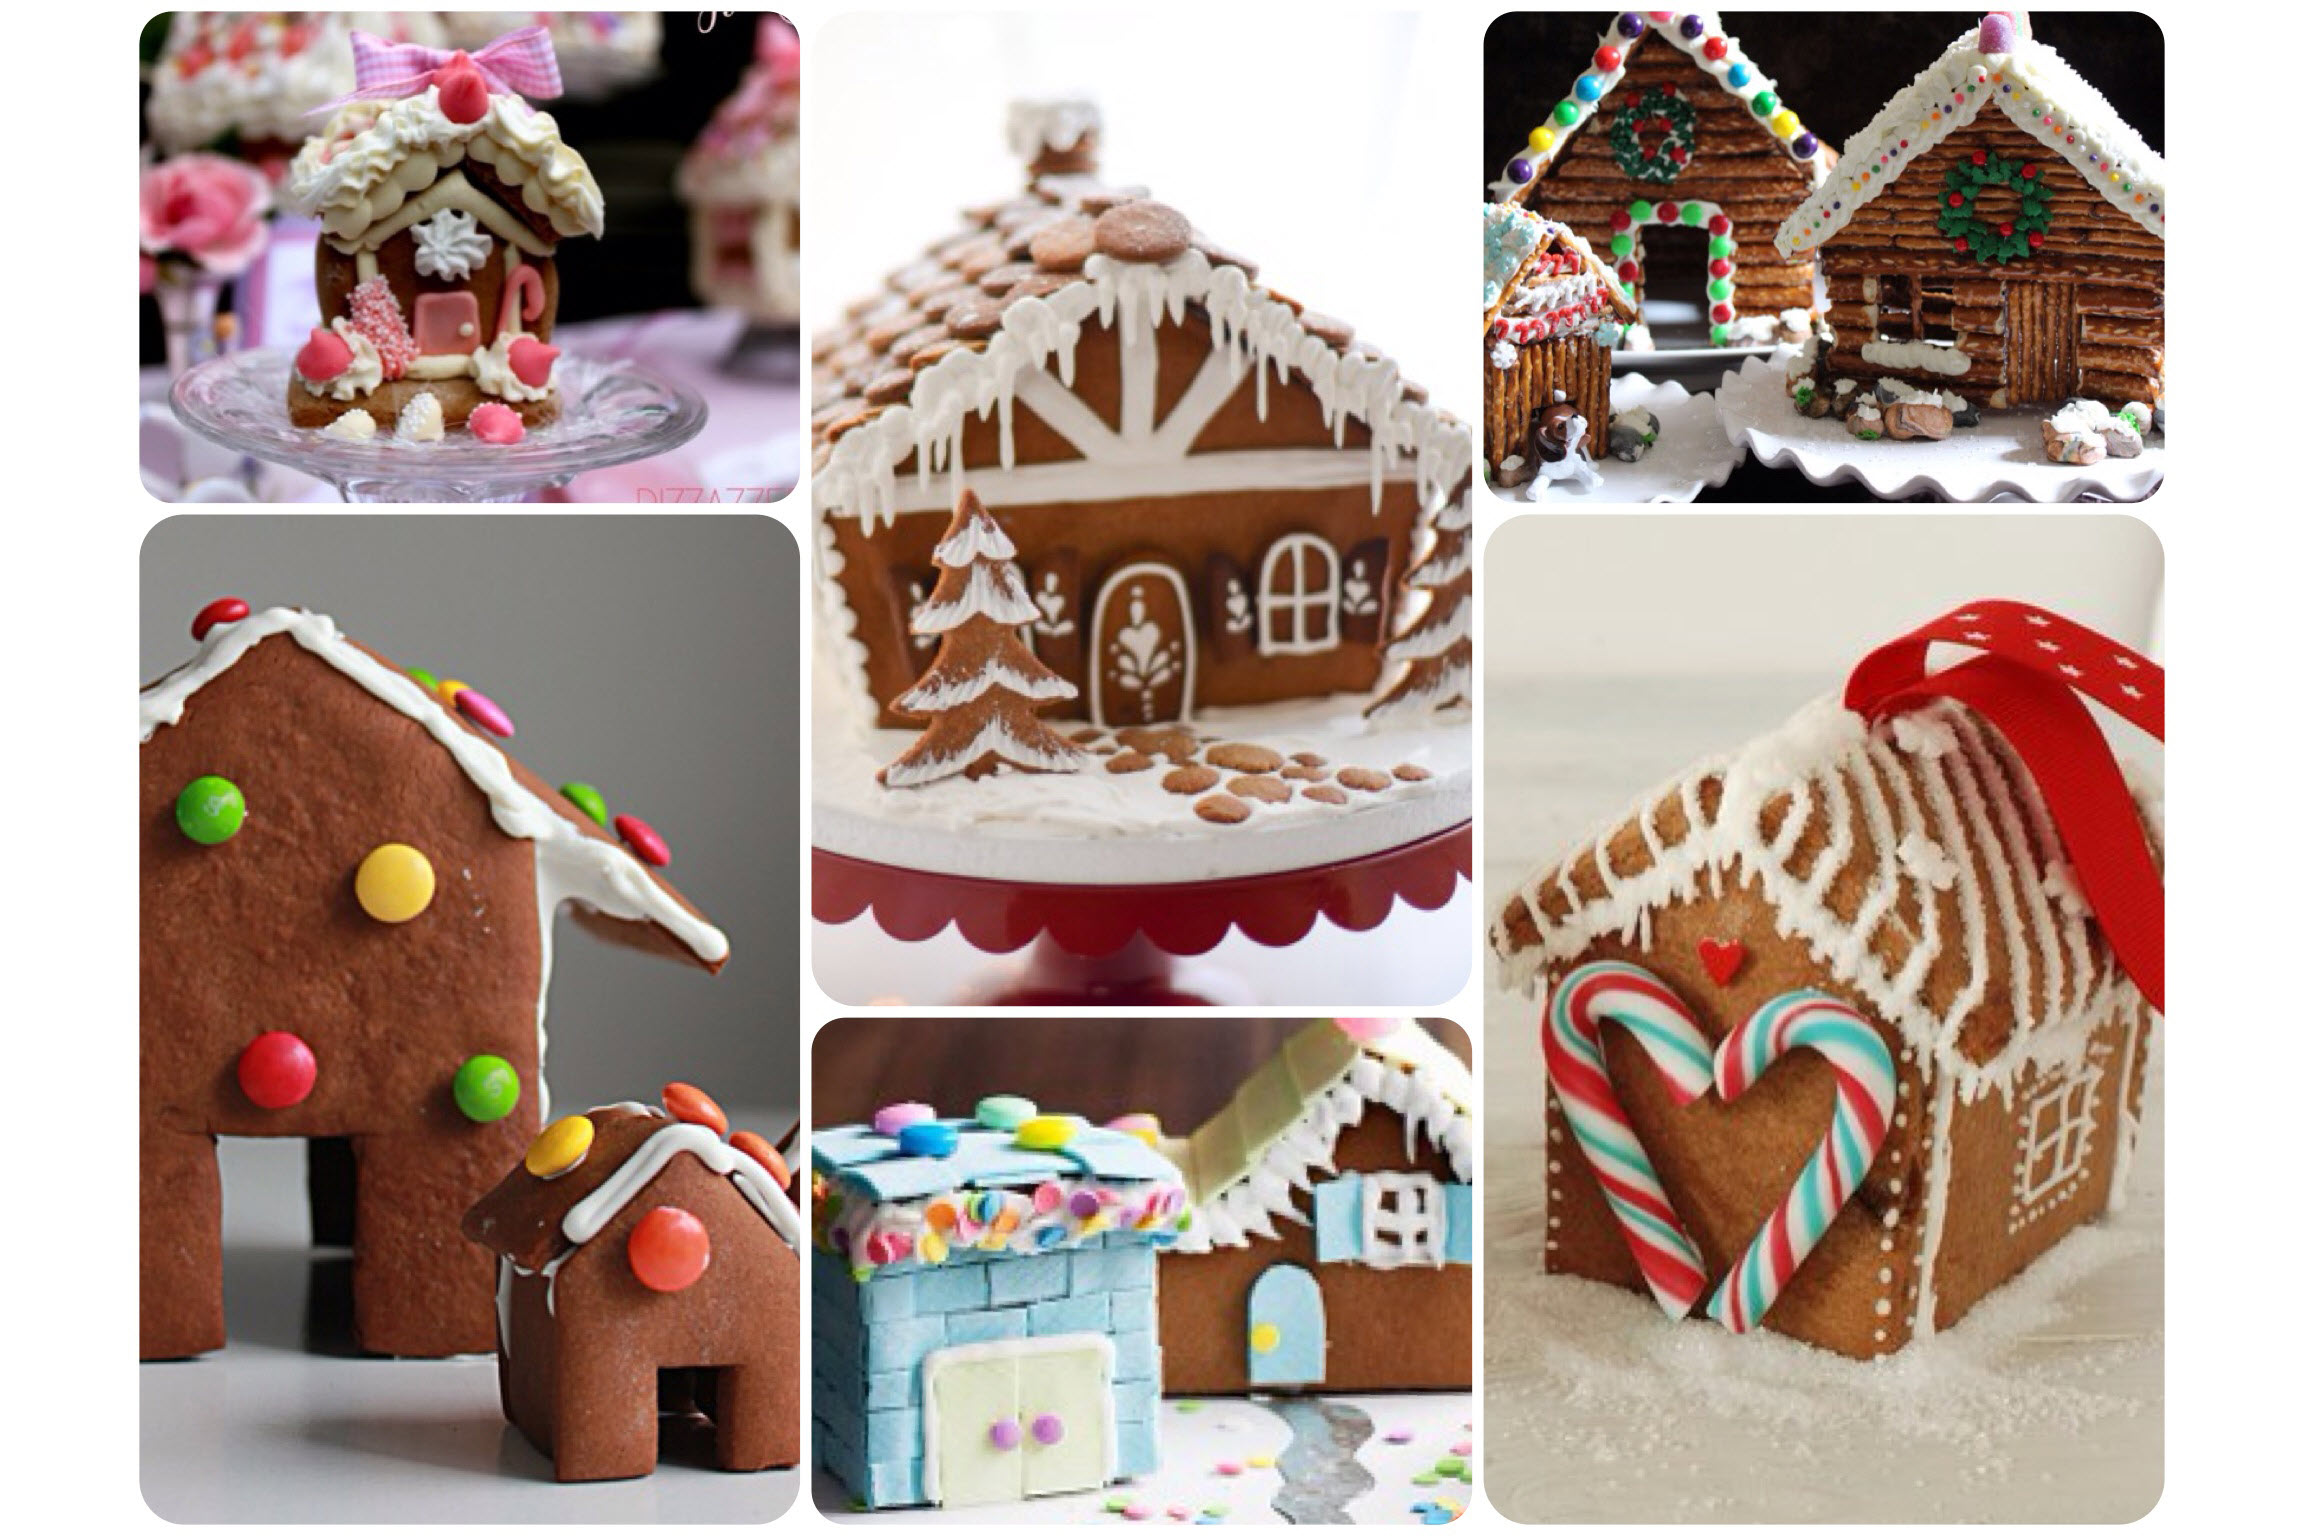 10 awesome gingerbread house ideas parentmap 10 awesome gingerbread house ideas solutioingenieria Choice Image